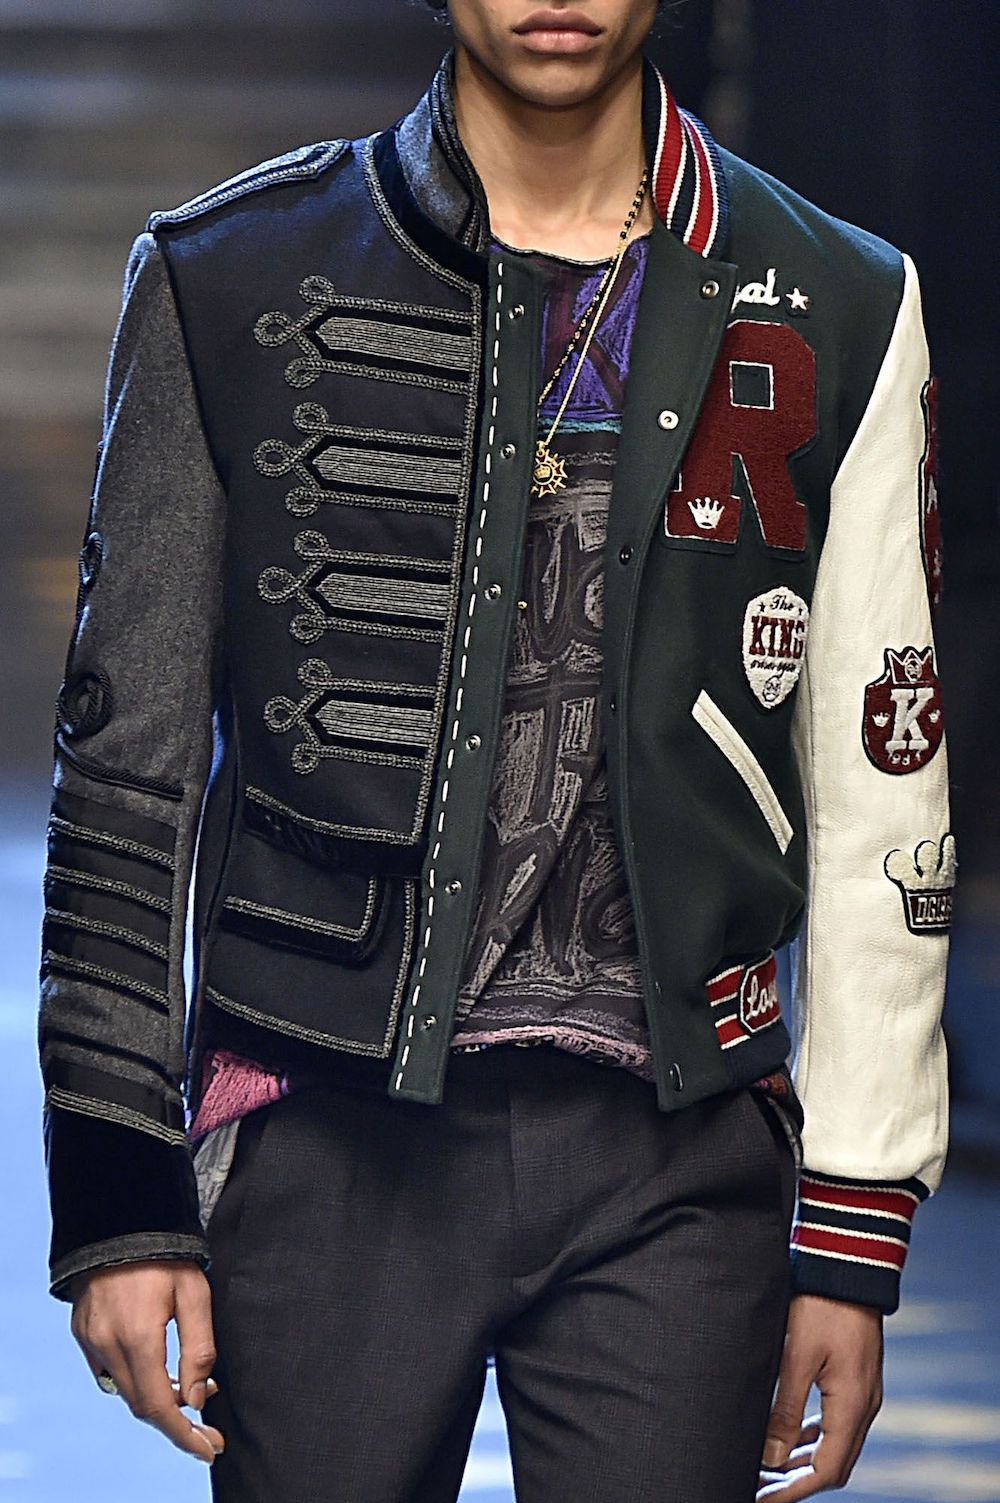 Embroidered Jacket - Dolce & Gabbana Fall 2017 Menswear Collection